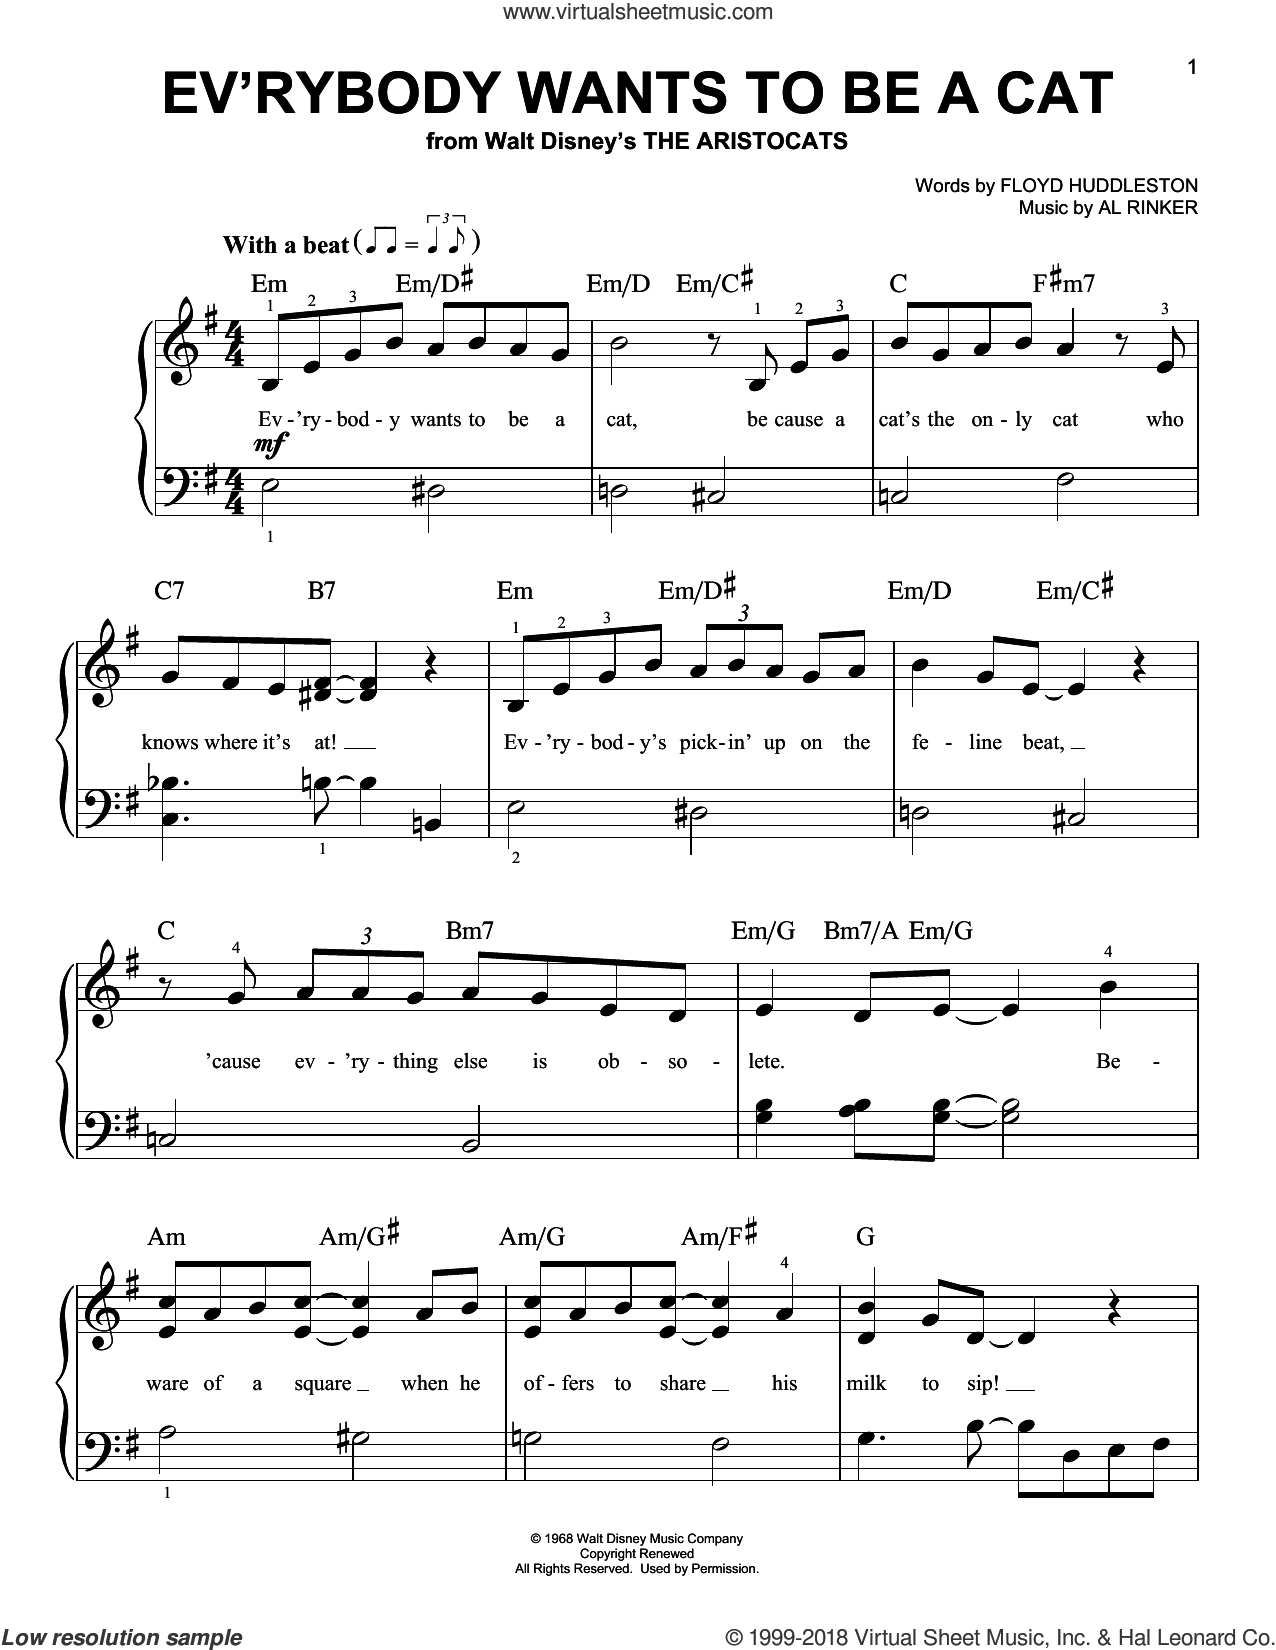 Ev'rybody Wants To Be A Cat sheet music for piano solo by Al Rinker and Floyd Huddleston. Score Image Preview.